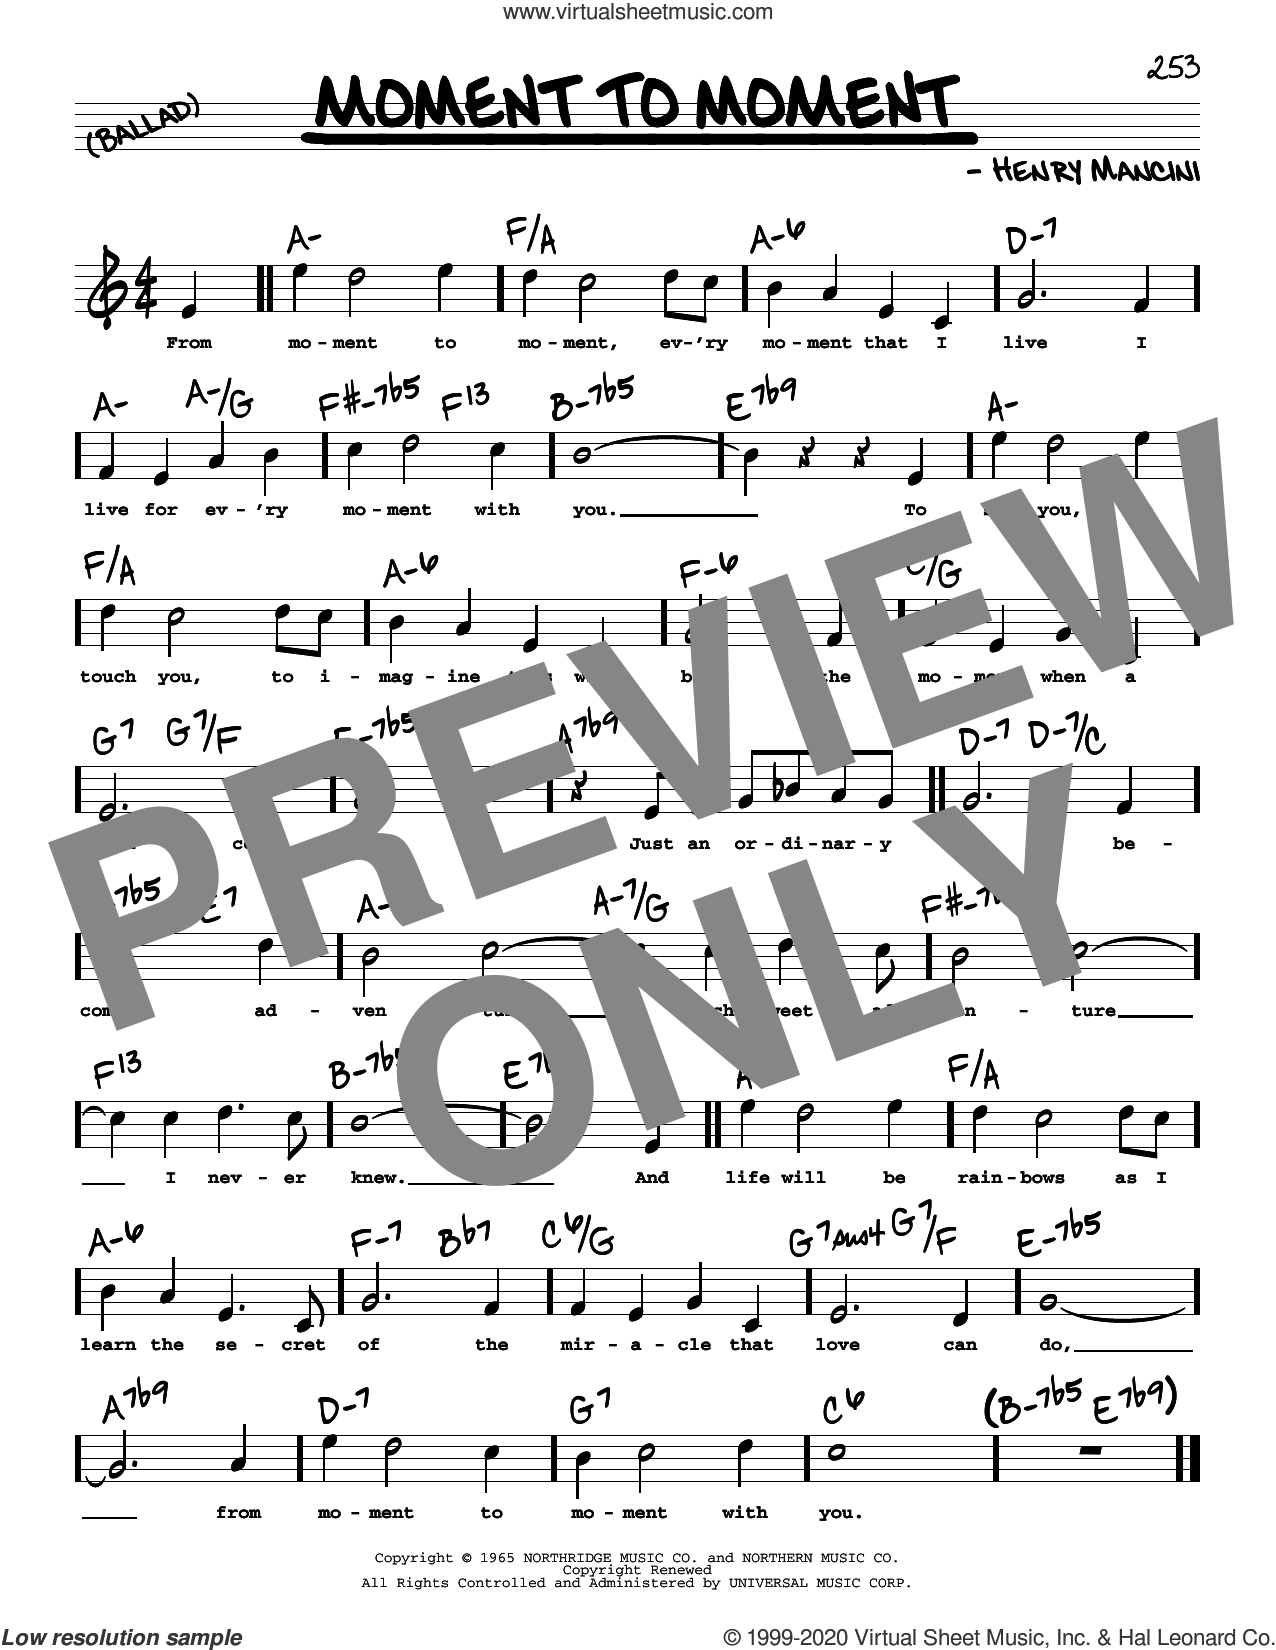 Moment To Moment (High Voice) sheet music for voice and other instruments (high voice) by Henry Mancini, intermediate skill level